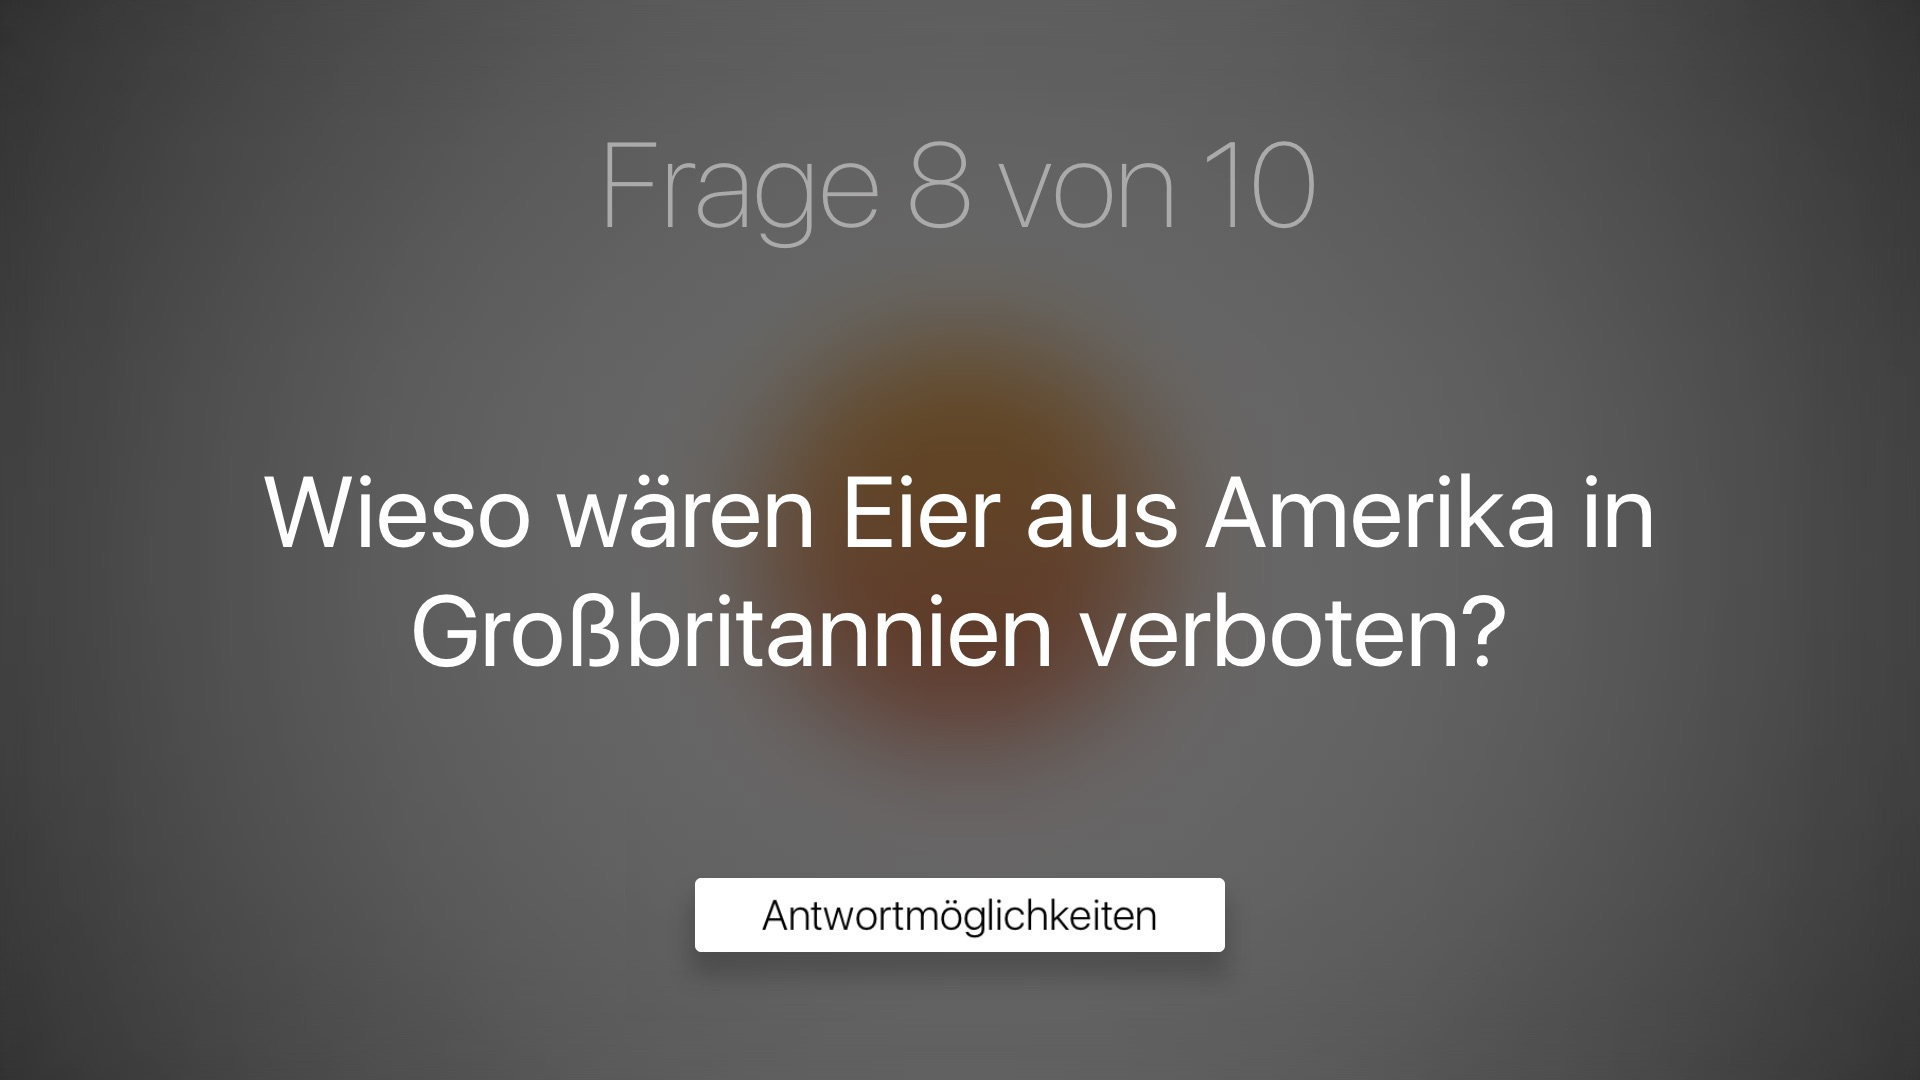 pass-me-frage-acht